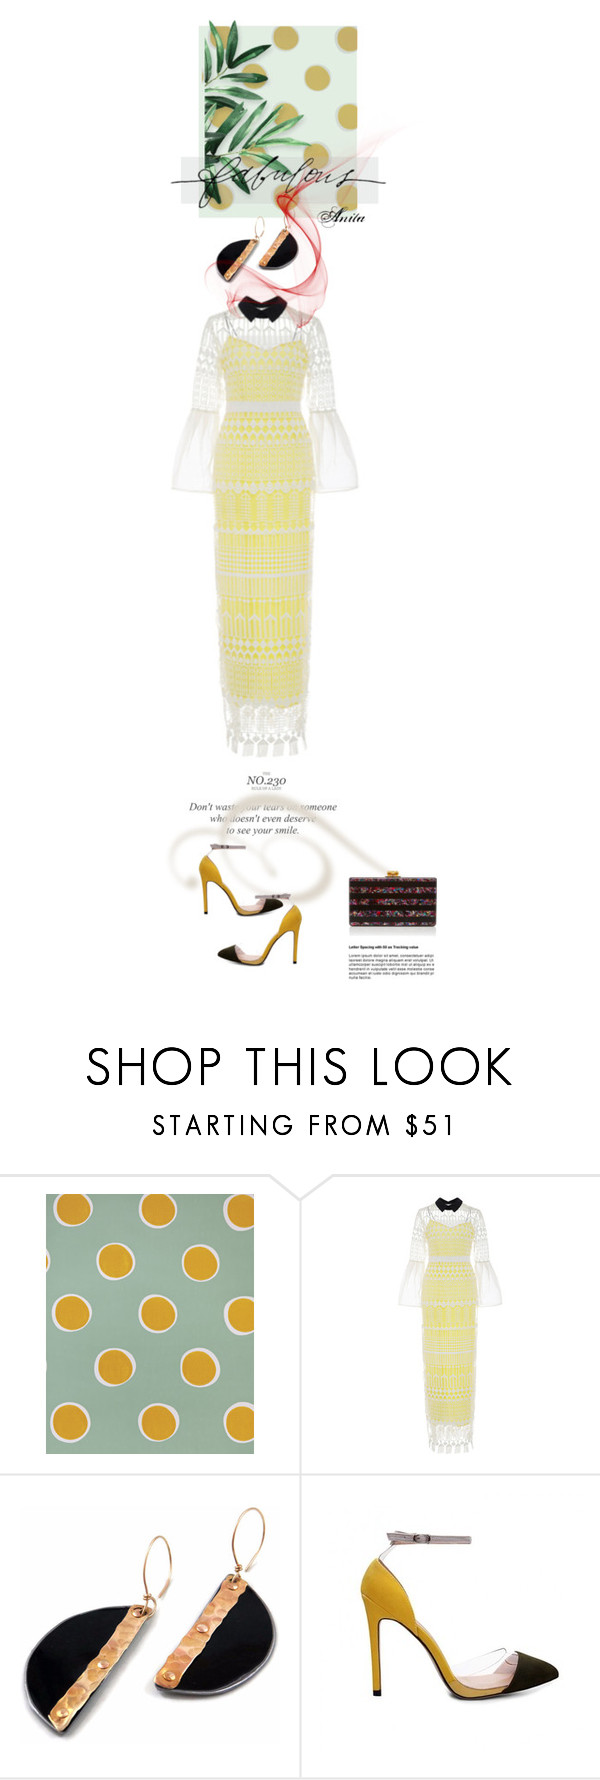 """""""Personal Pick"""" by wodecai ❤ liked on Polyvore featuring Serena & Lily, Stella & Dot, self-portrait and Edie Parker"""